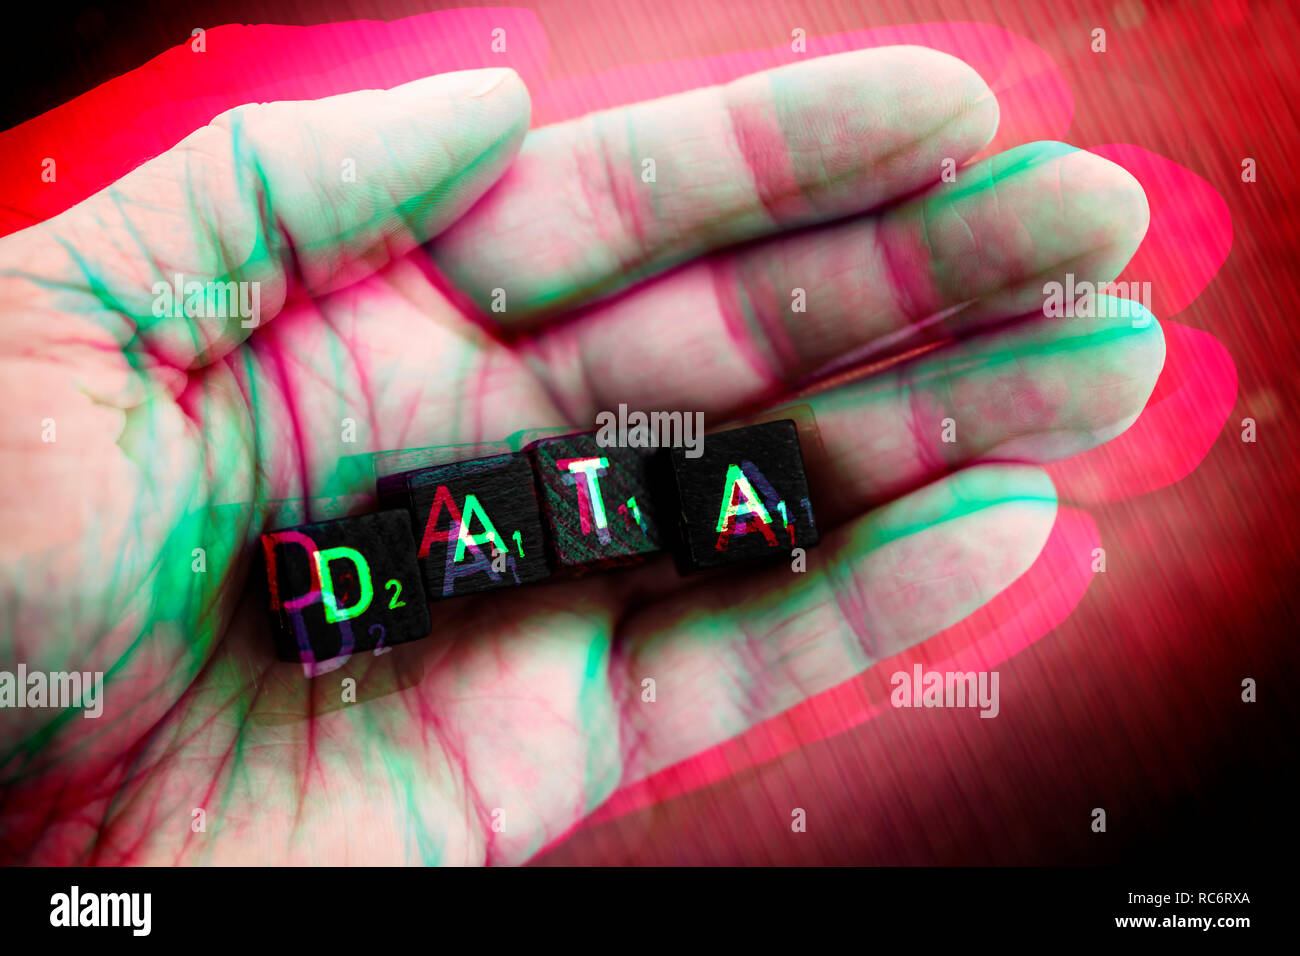 Letter cubes forming the word data on a hand - Stock Image